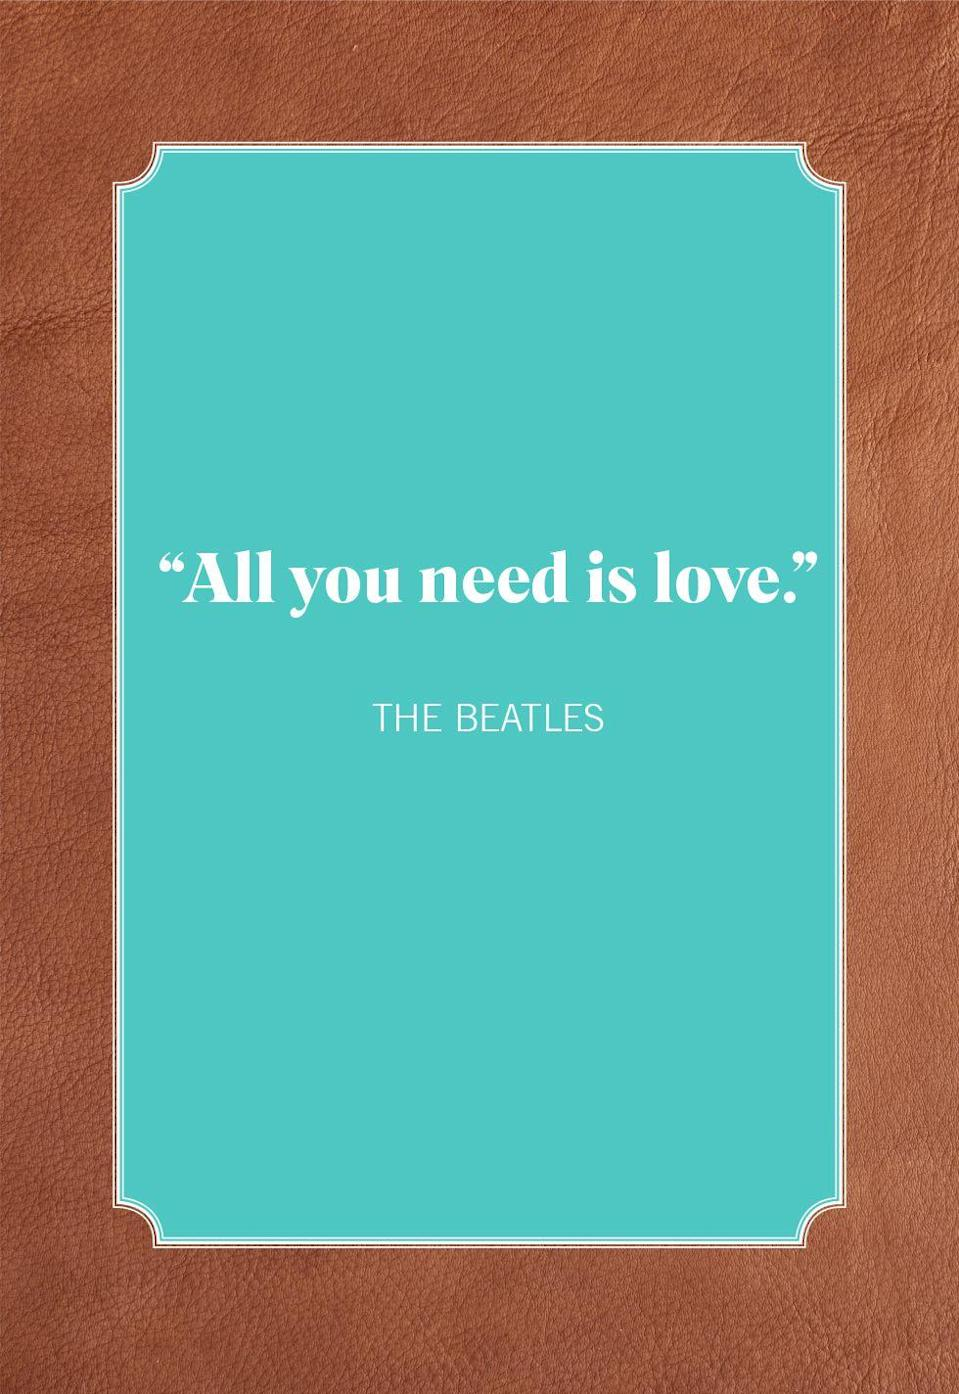 "<p>""All you need is love.""</p>"